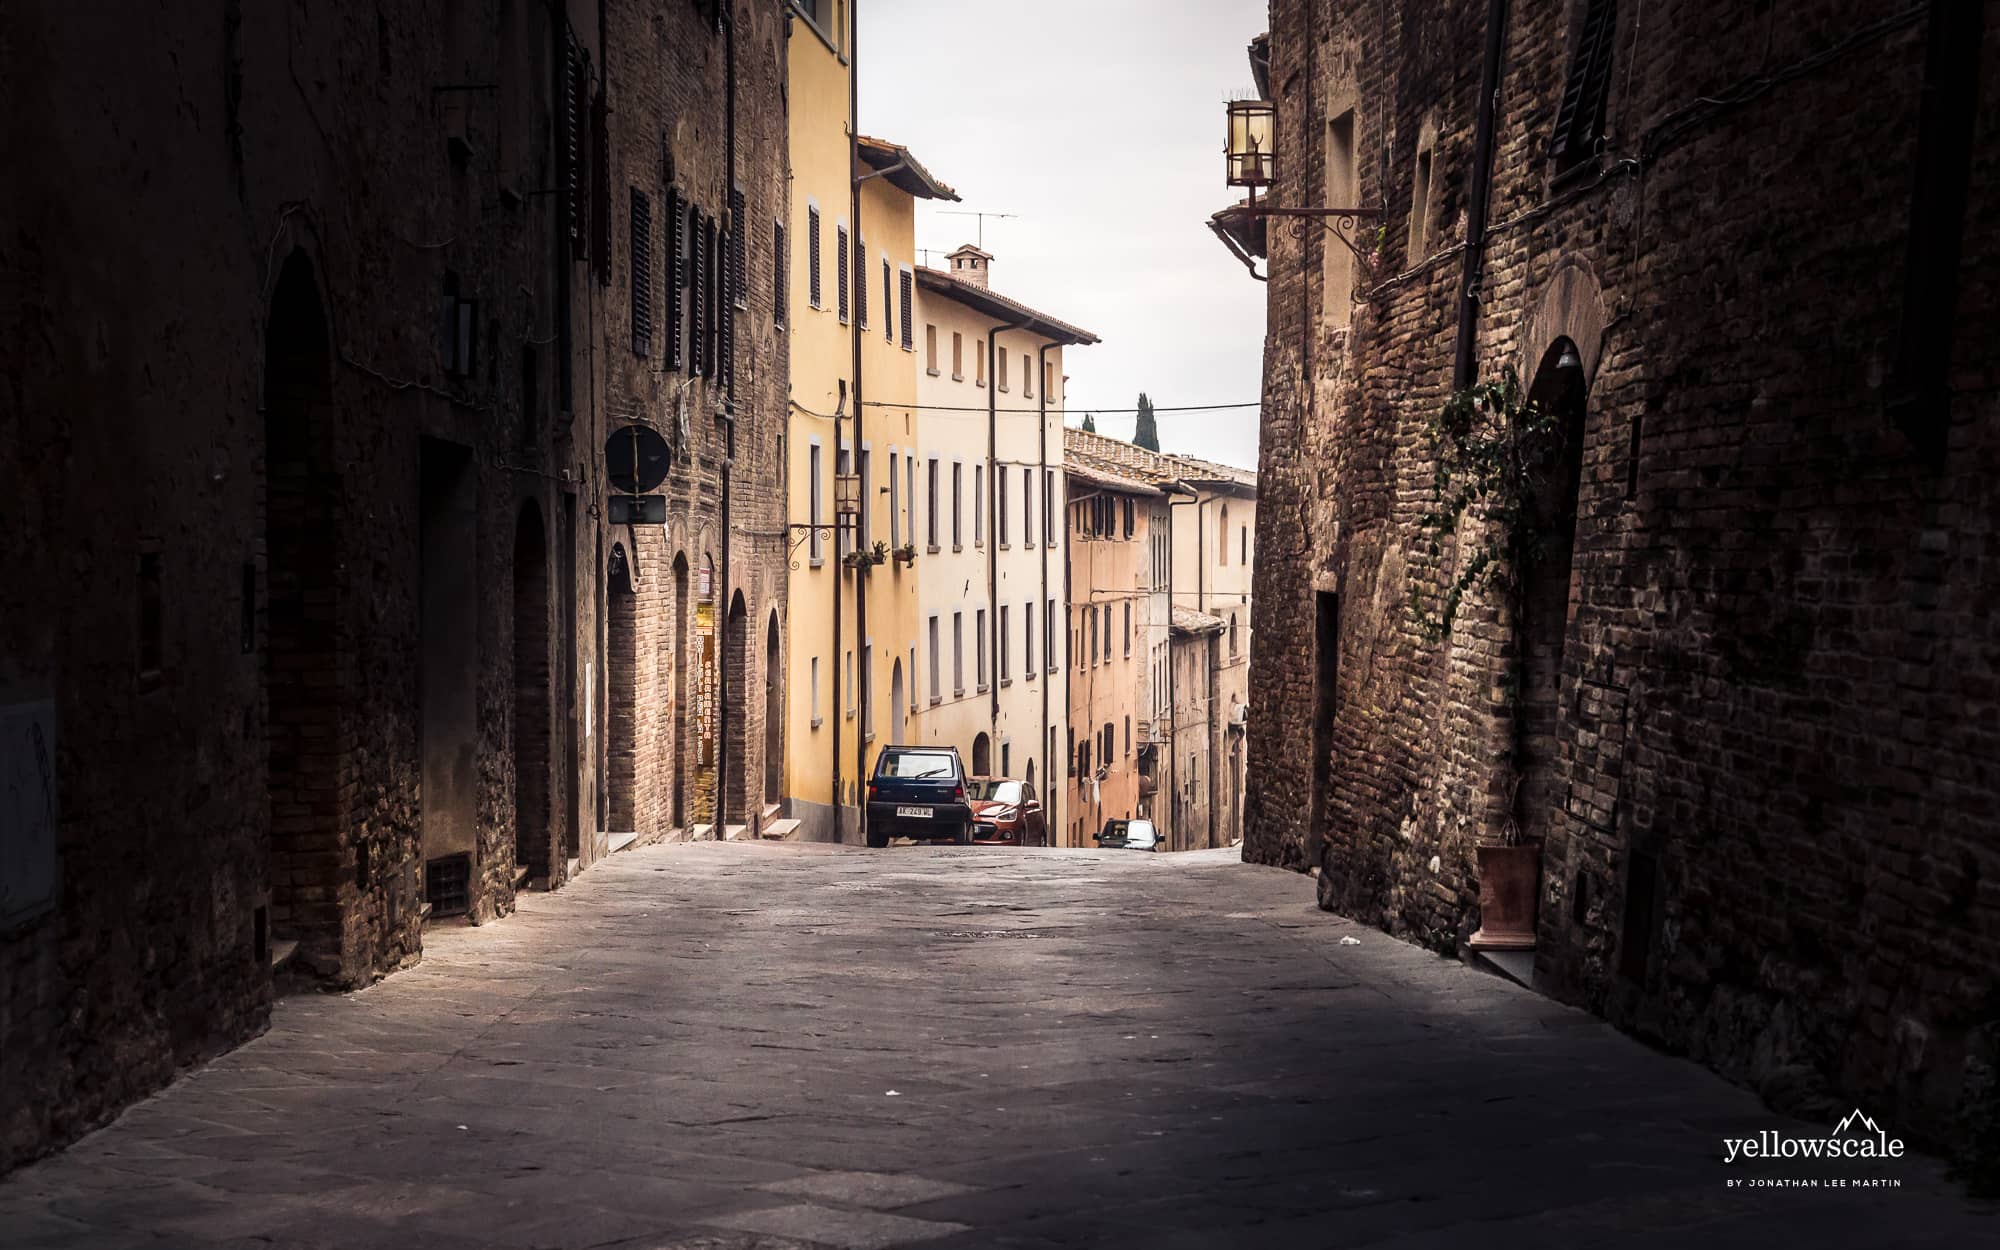 Street in Montepulciano, Italy.